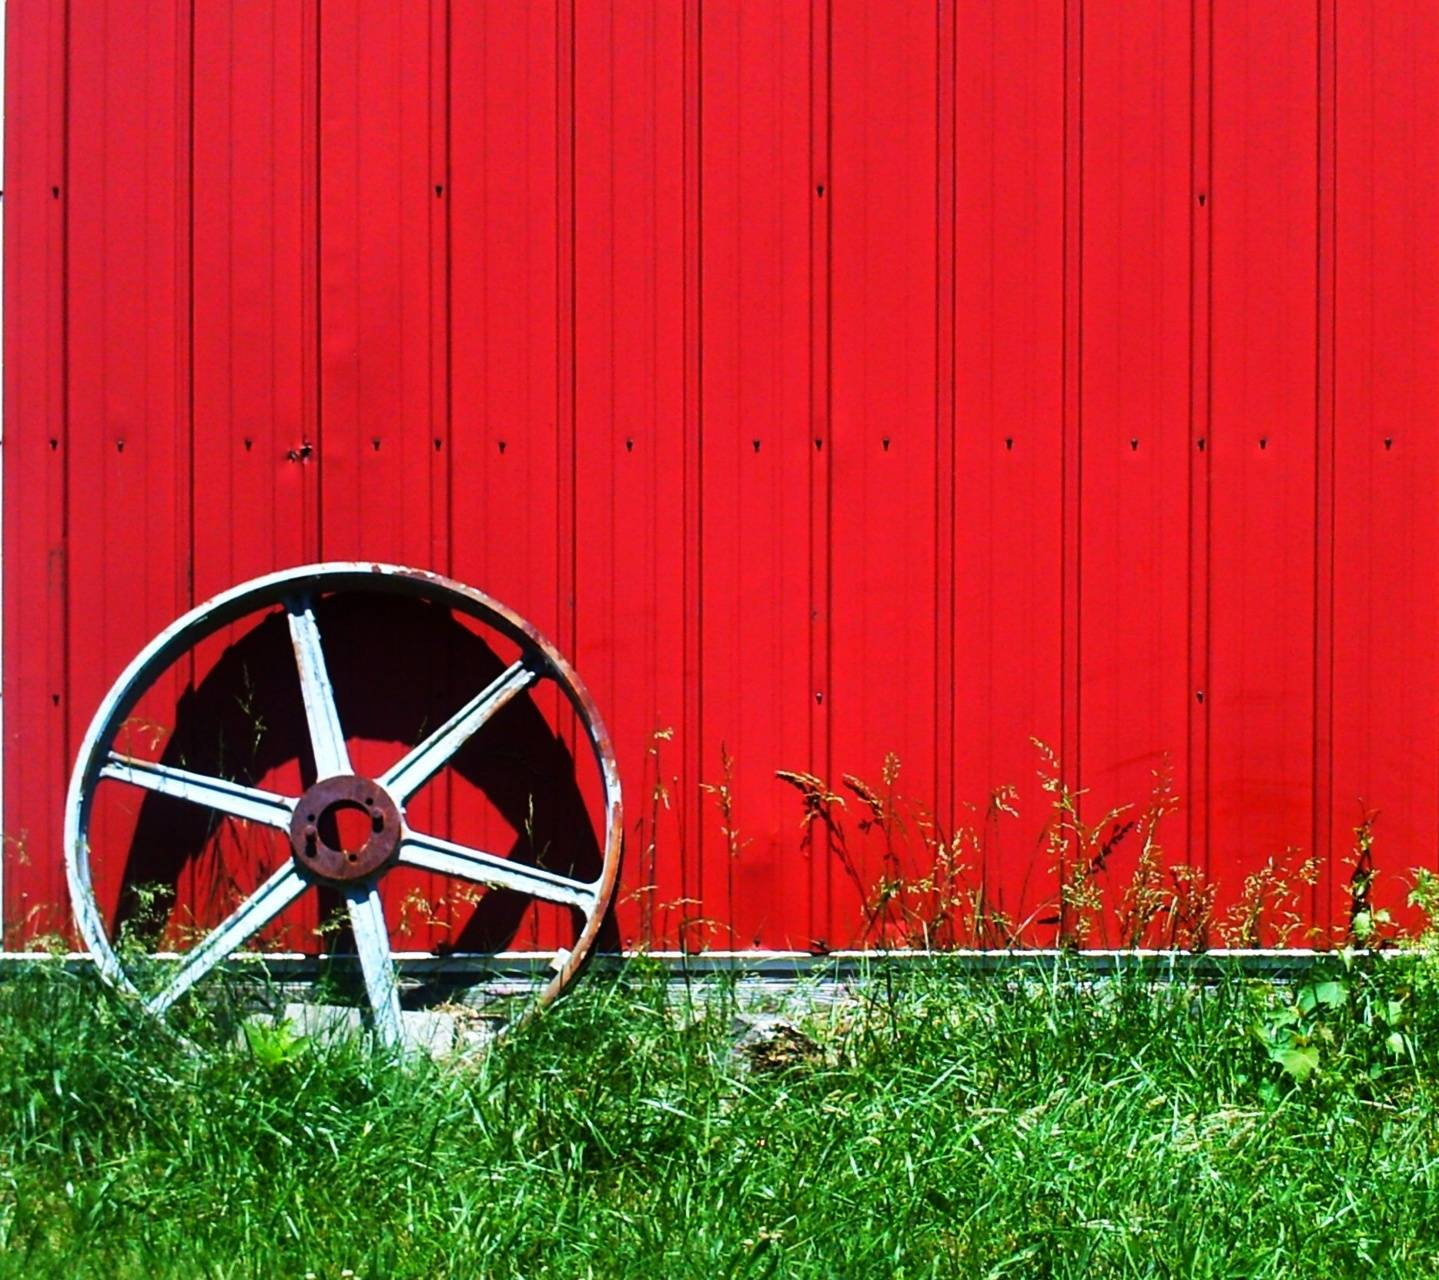 red wall and wheel